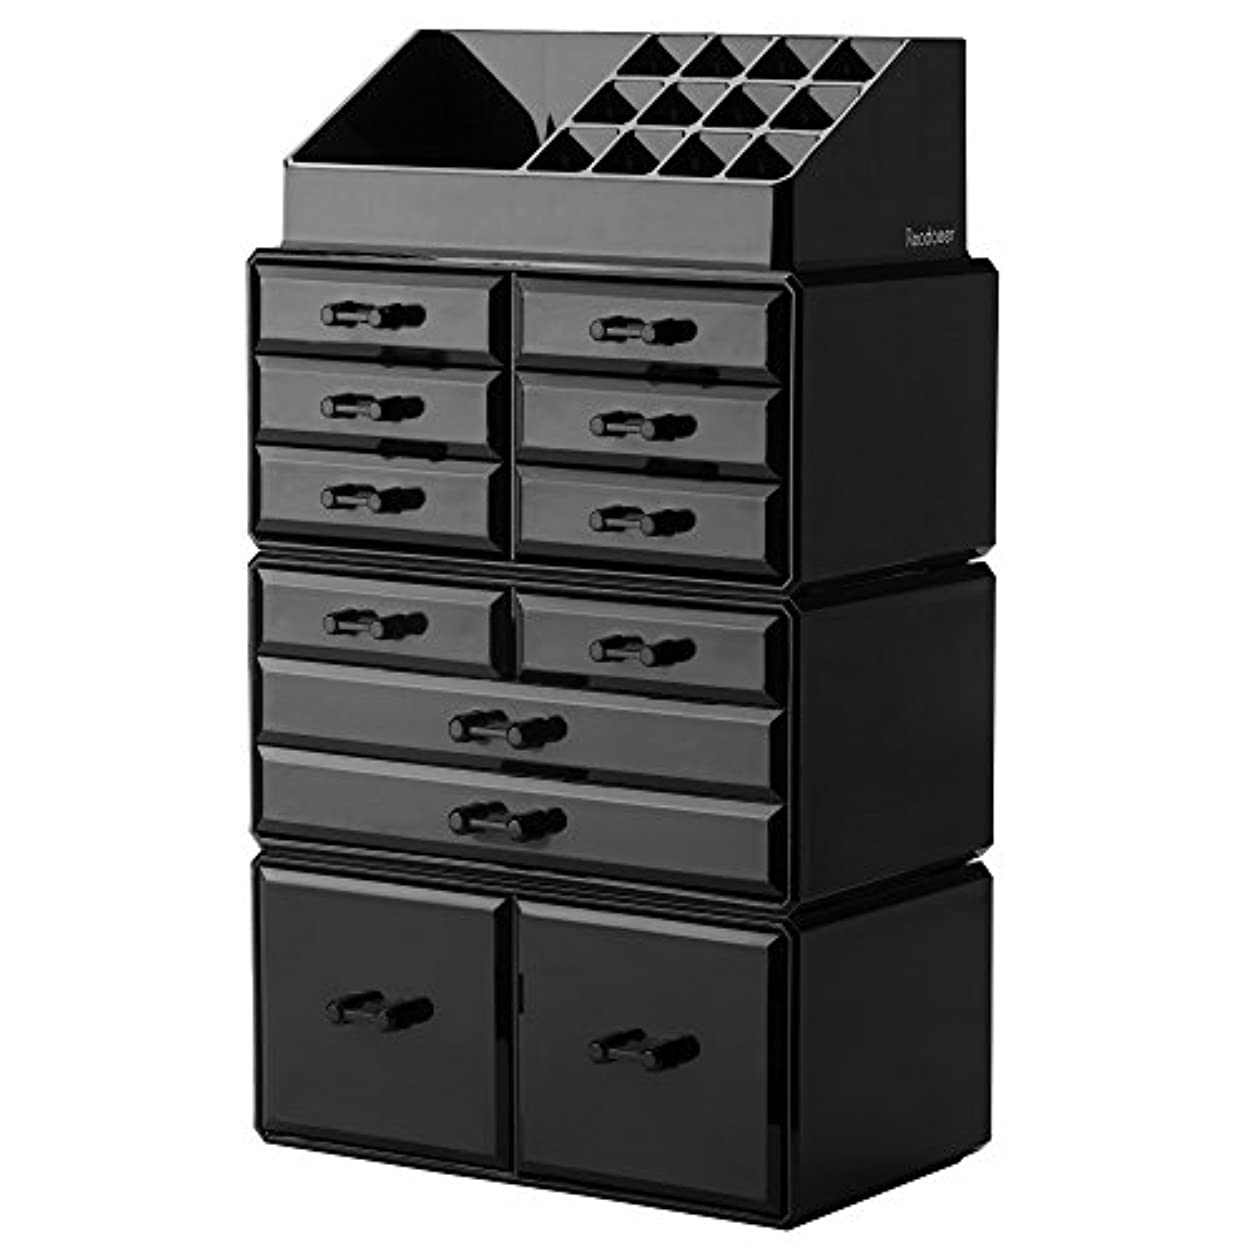 懸念弾丸登録する(Black) - Readaeer Makeup Cosmetic Organiser Storage Drawers Display Boxes Case with 12 Drawers(Black)